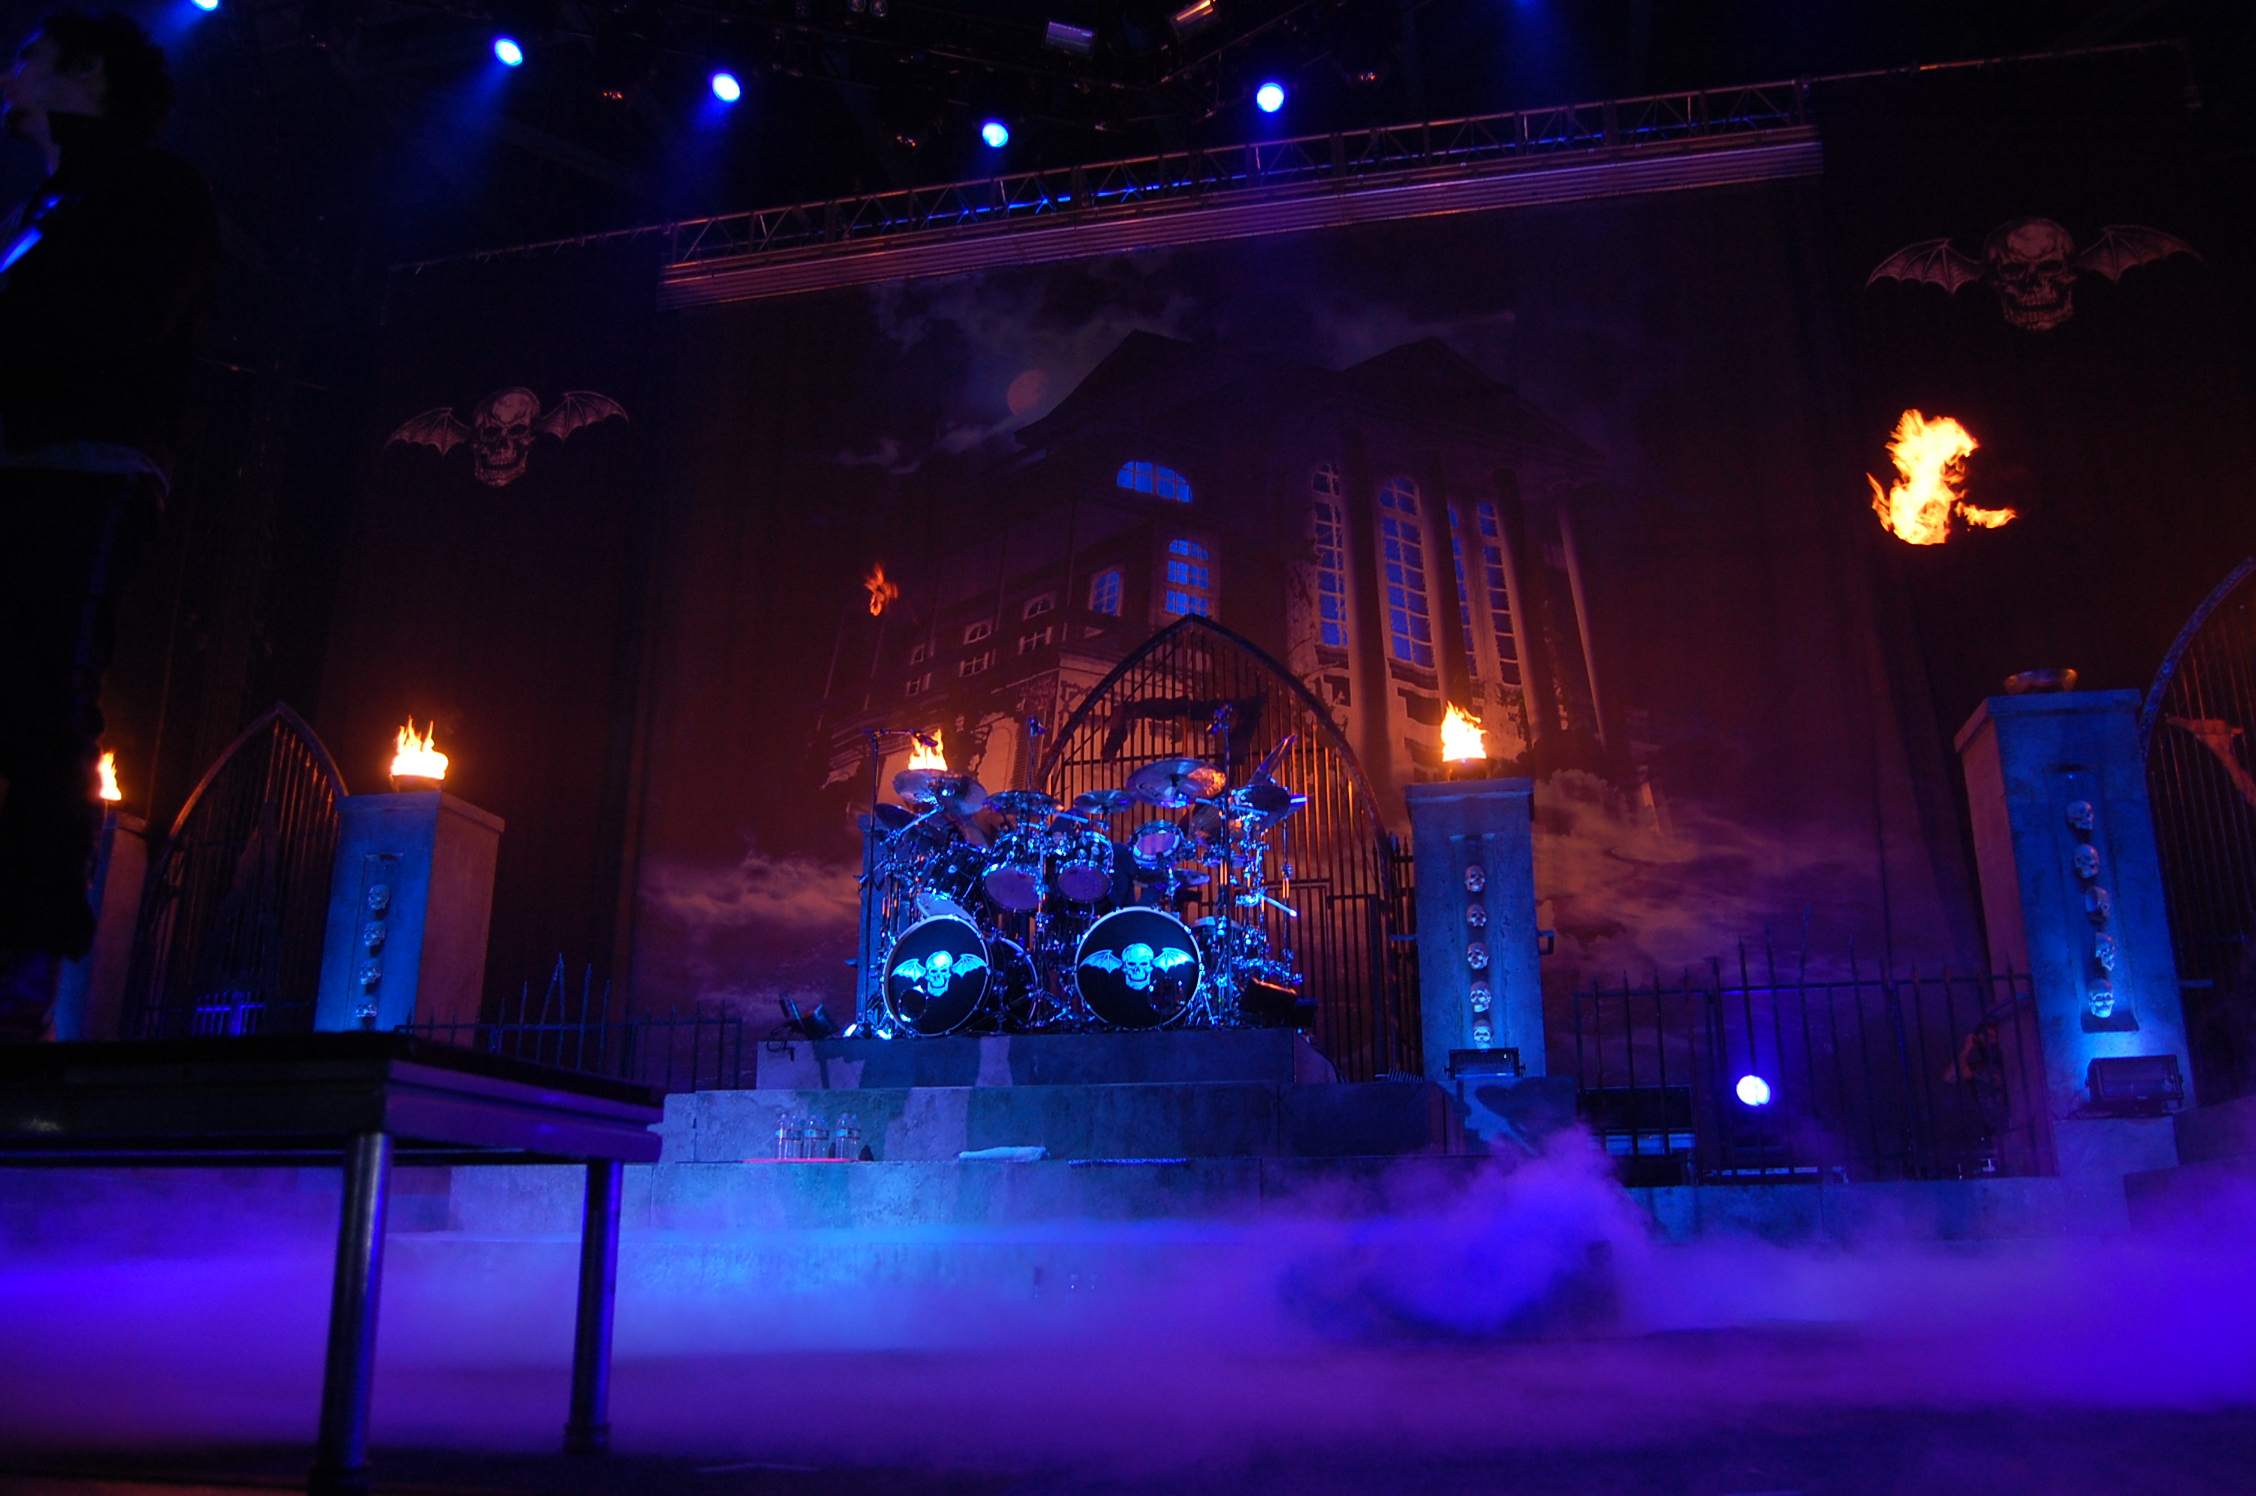 The Stage For Avenged Sevenfold